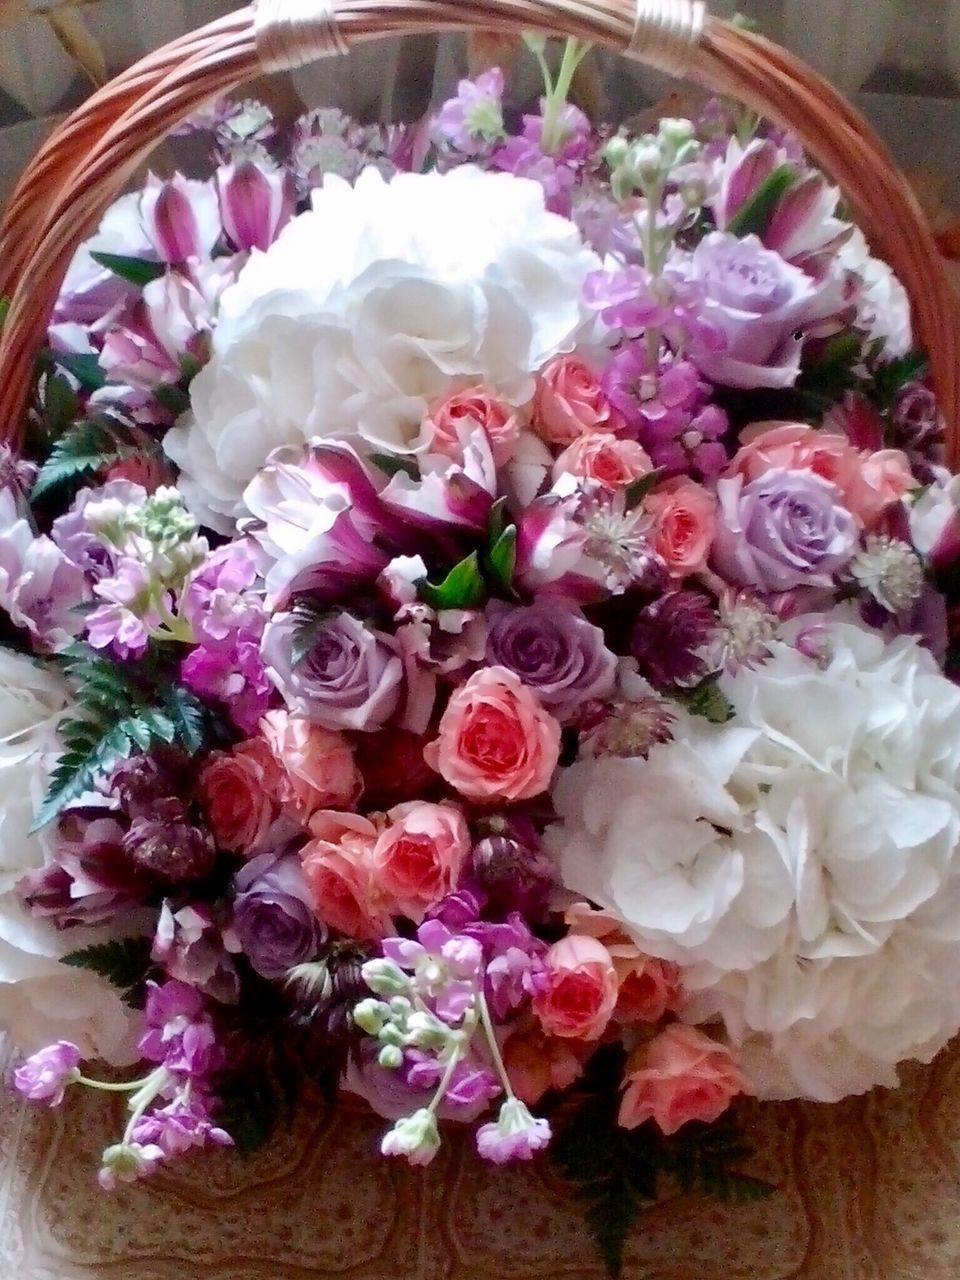 flower, rose - flower, bouquet, no people, wedding, celebration, pink color, beauty in nature, freshness, petal, fragility, indoors, nature, peony, flower head, close-up, day